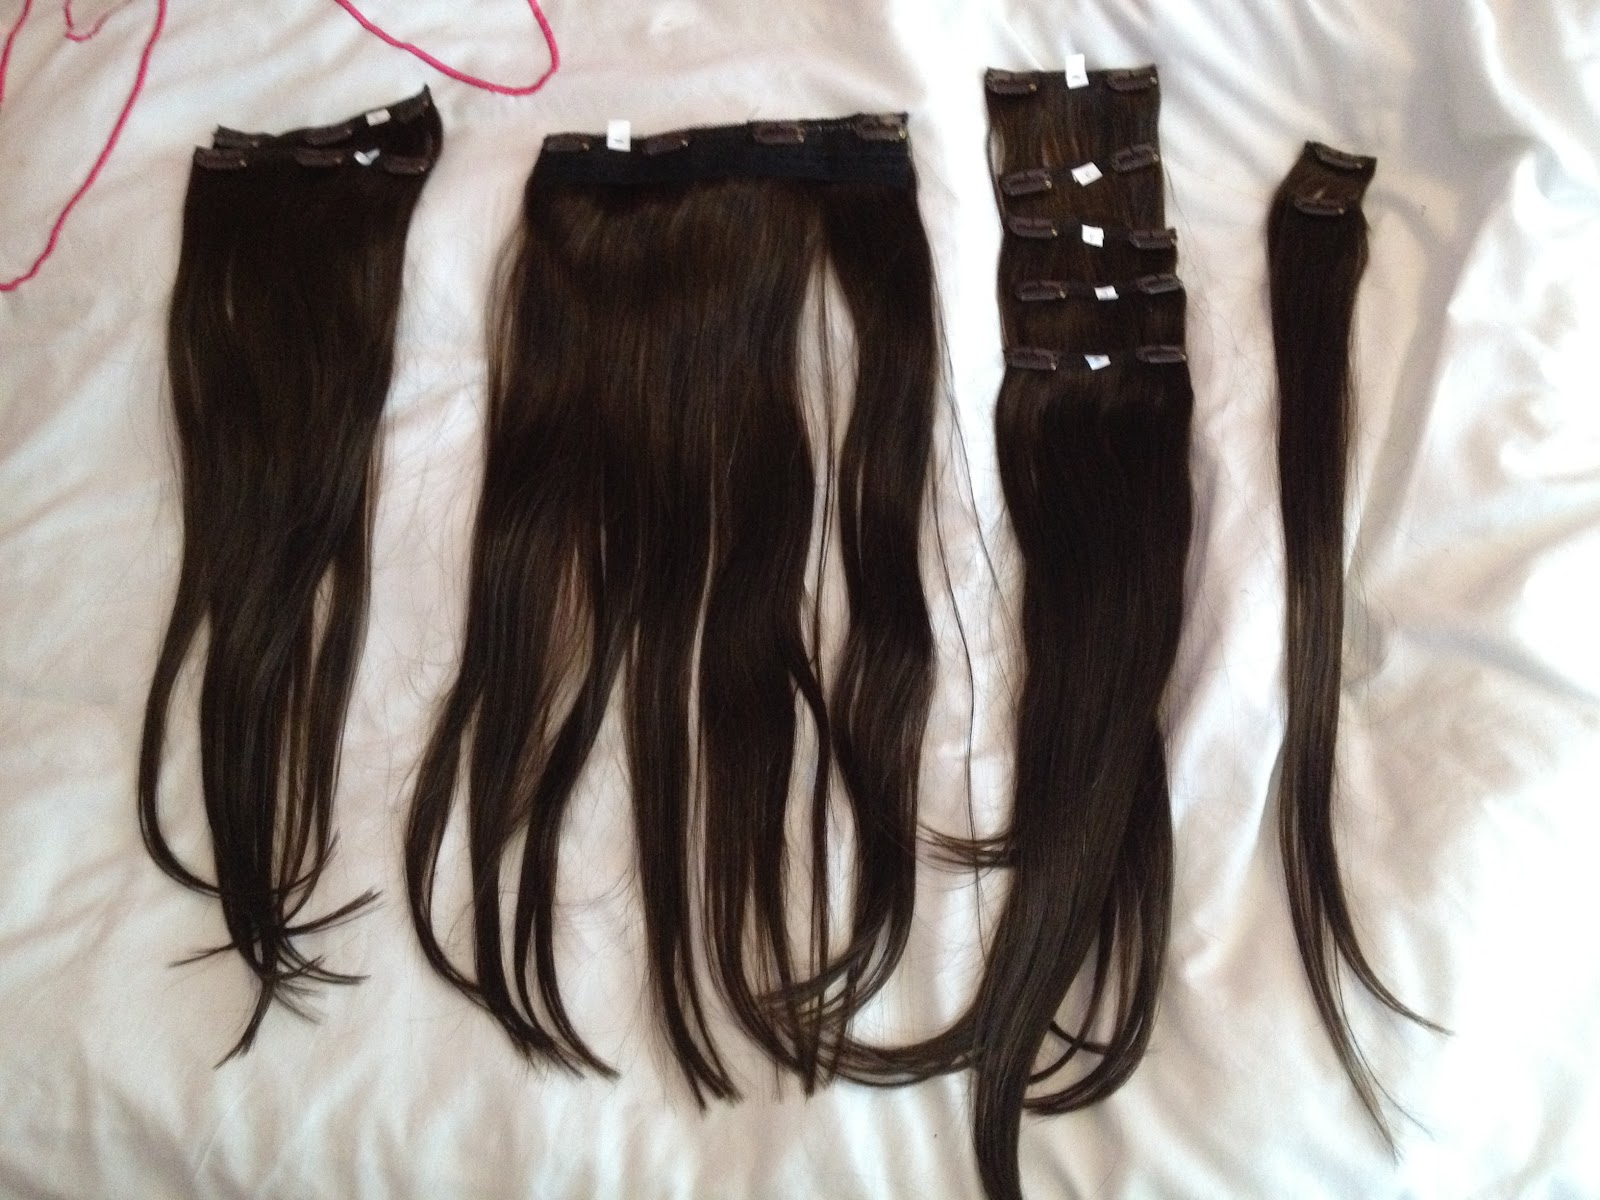 Headkandy Hair Extenstions 20 22 Inches In Shade Espresso Chlos